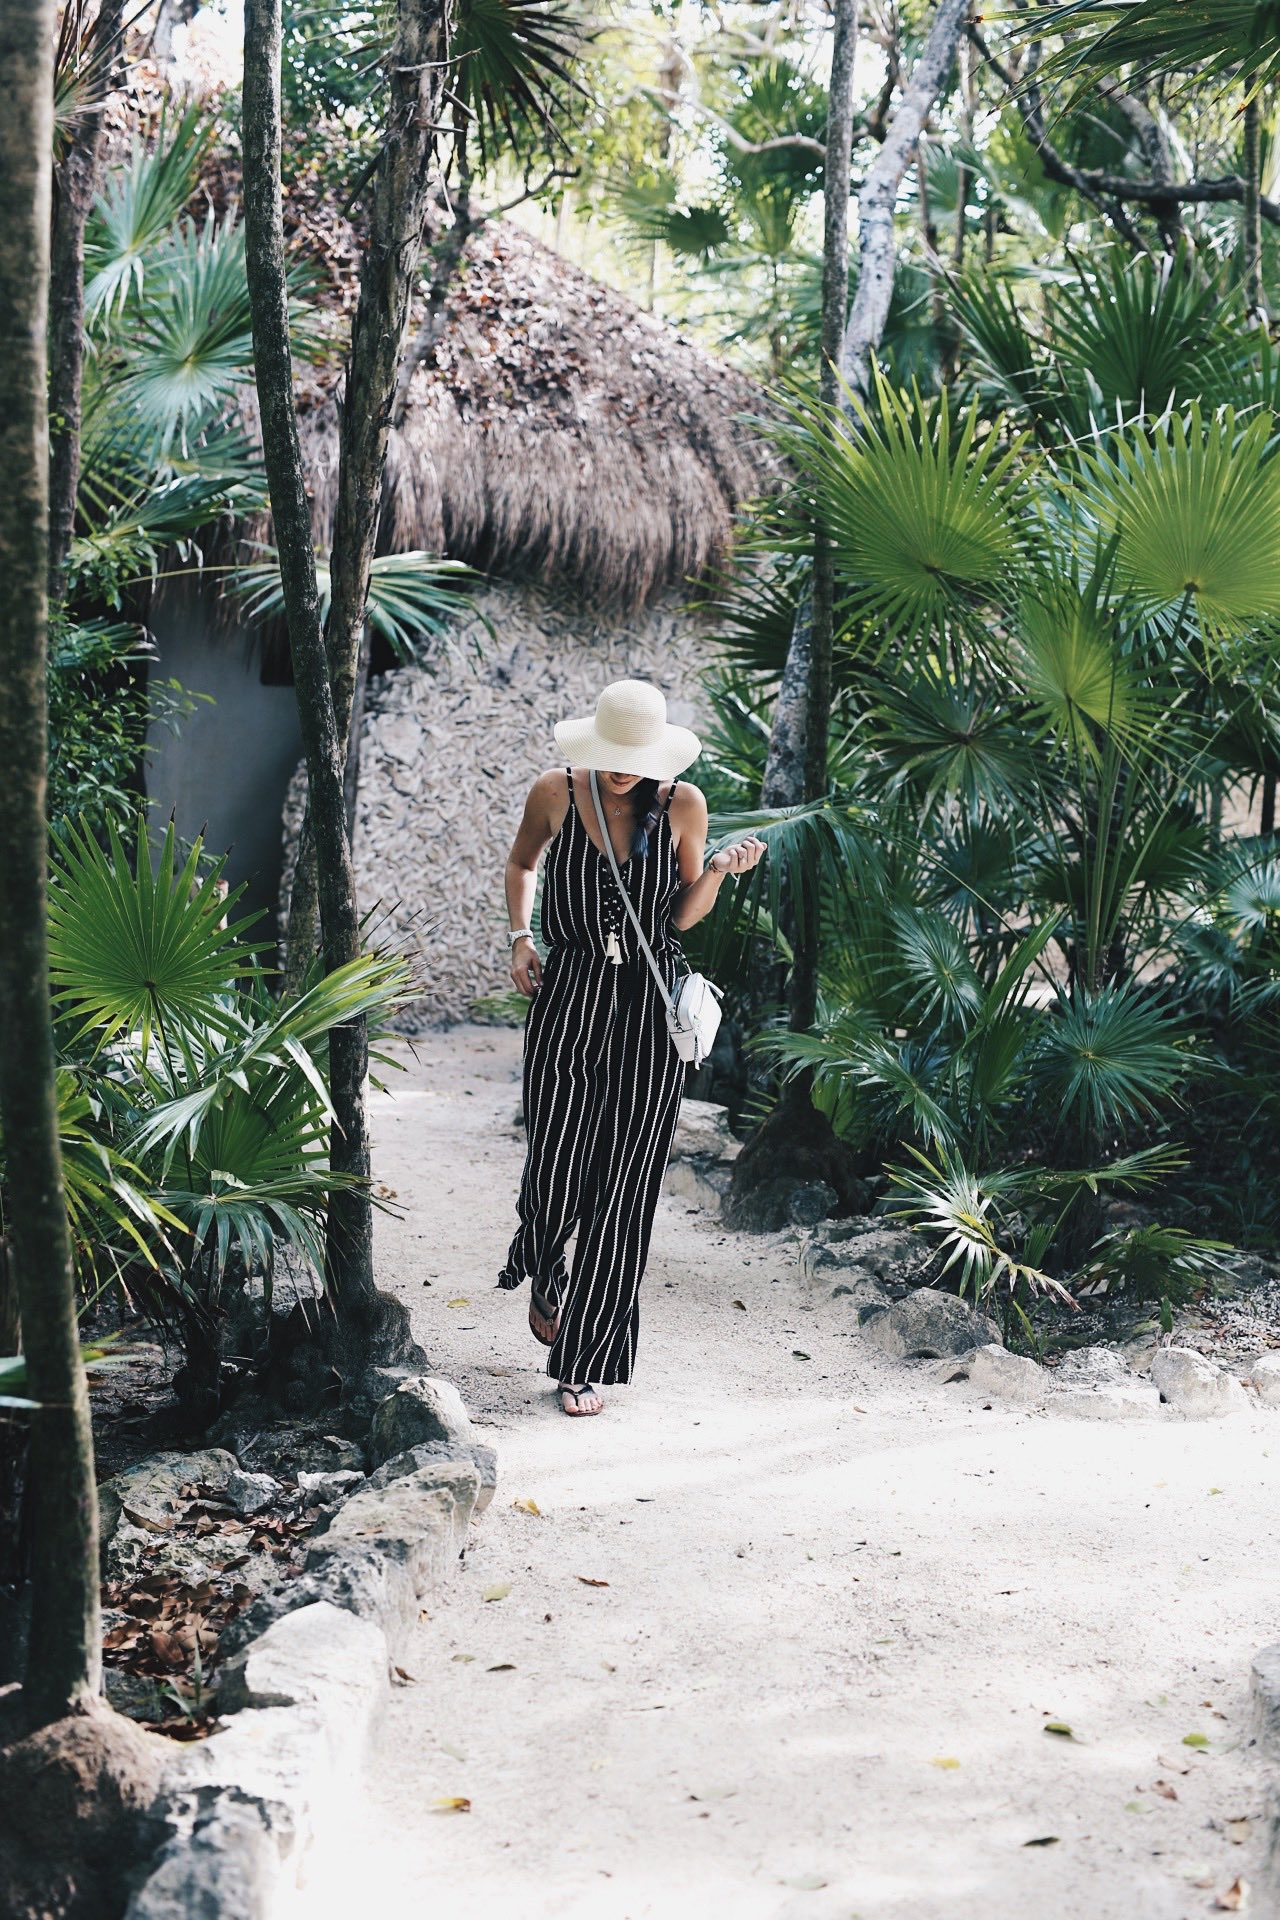 DTKAustin shares some of her recent photos from Tulum, Mexico with ideas on what to wear to beat the heat in the jungle or on the beach. Jumpsuit from Wala Swim, Bag from Henri Bendel. Click for more images and information. | how to style a jumpsuit | how to wear a jumpsuit | jumpsuit styling tips | summer fashion tips | summer outfit ideas | summer style tips | what to wear for summer | warm weather fashion | fashion for summer | style tips for summer | outfit ideas for summer || Dressed to Kill